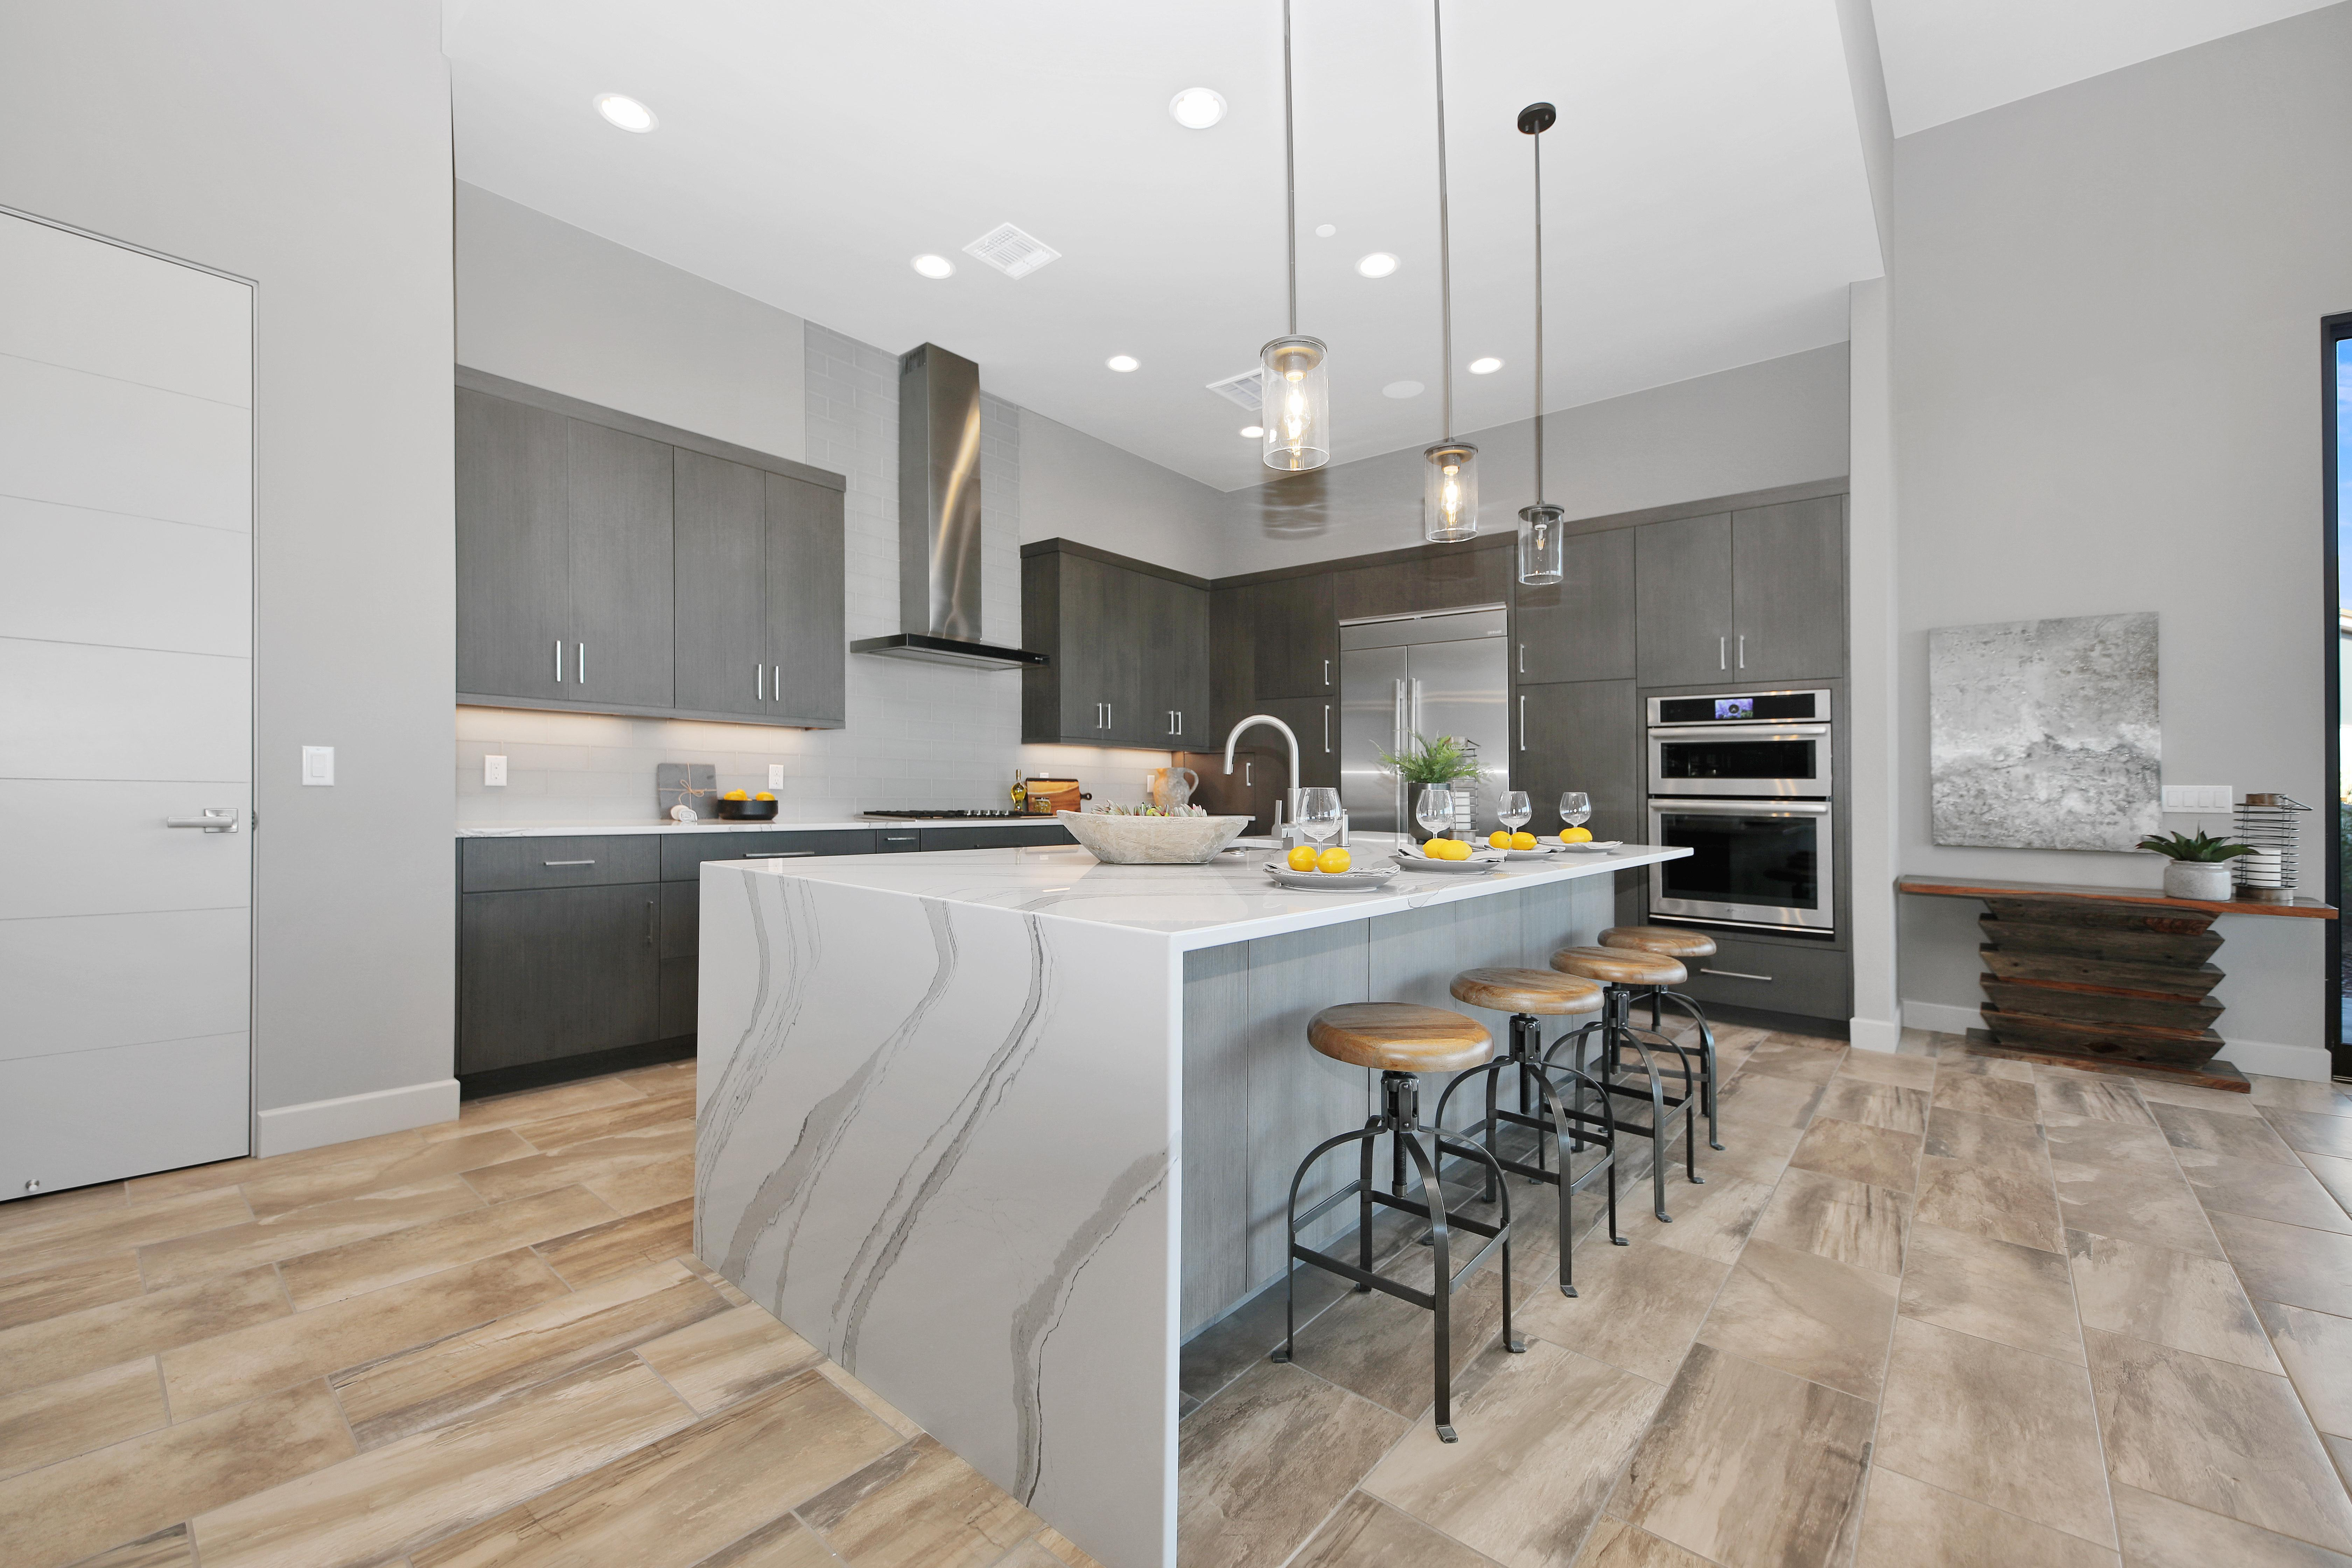 Kitchen featured in the Double Eagle By Fairfield Homes in Tucson, AZ